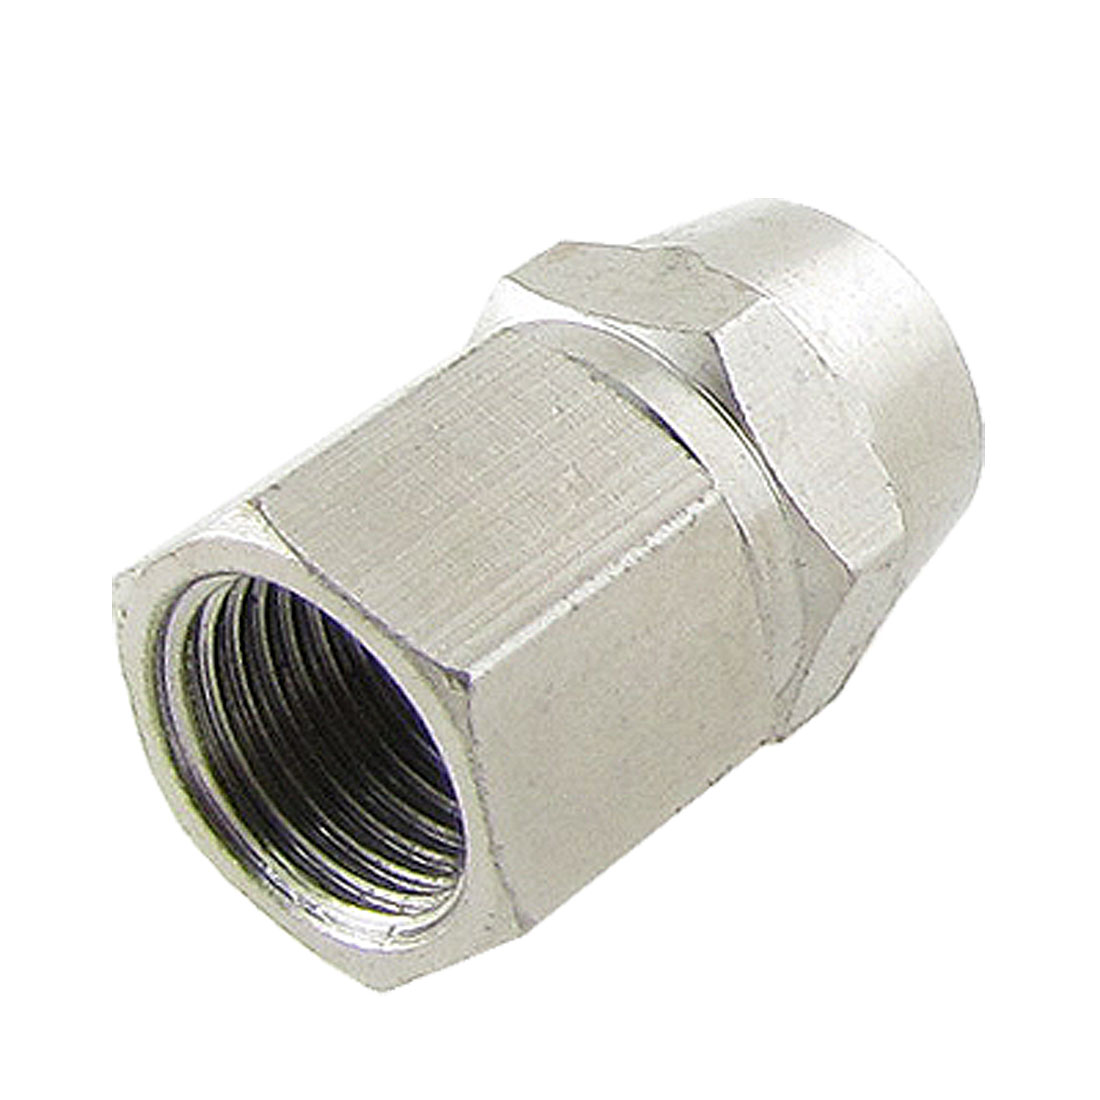 "1/3"" Female Thread Pneumatic Fitting Straight Quick Connector for 7/32"" x 3/10"" Tube"